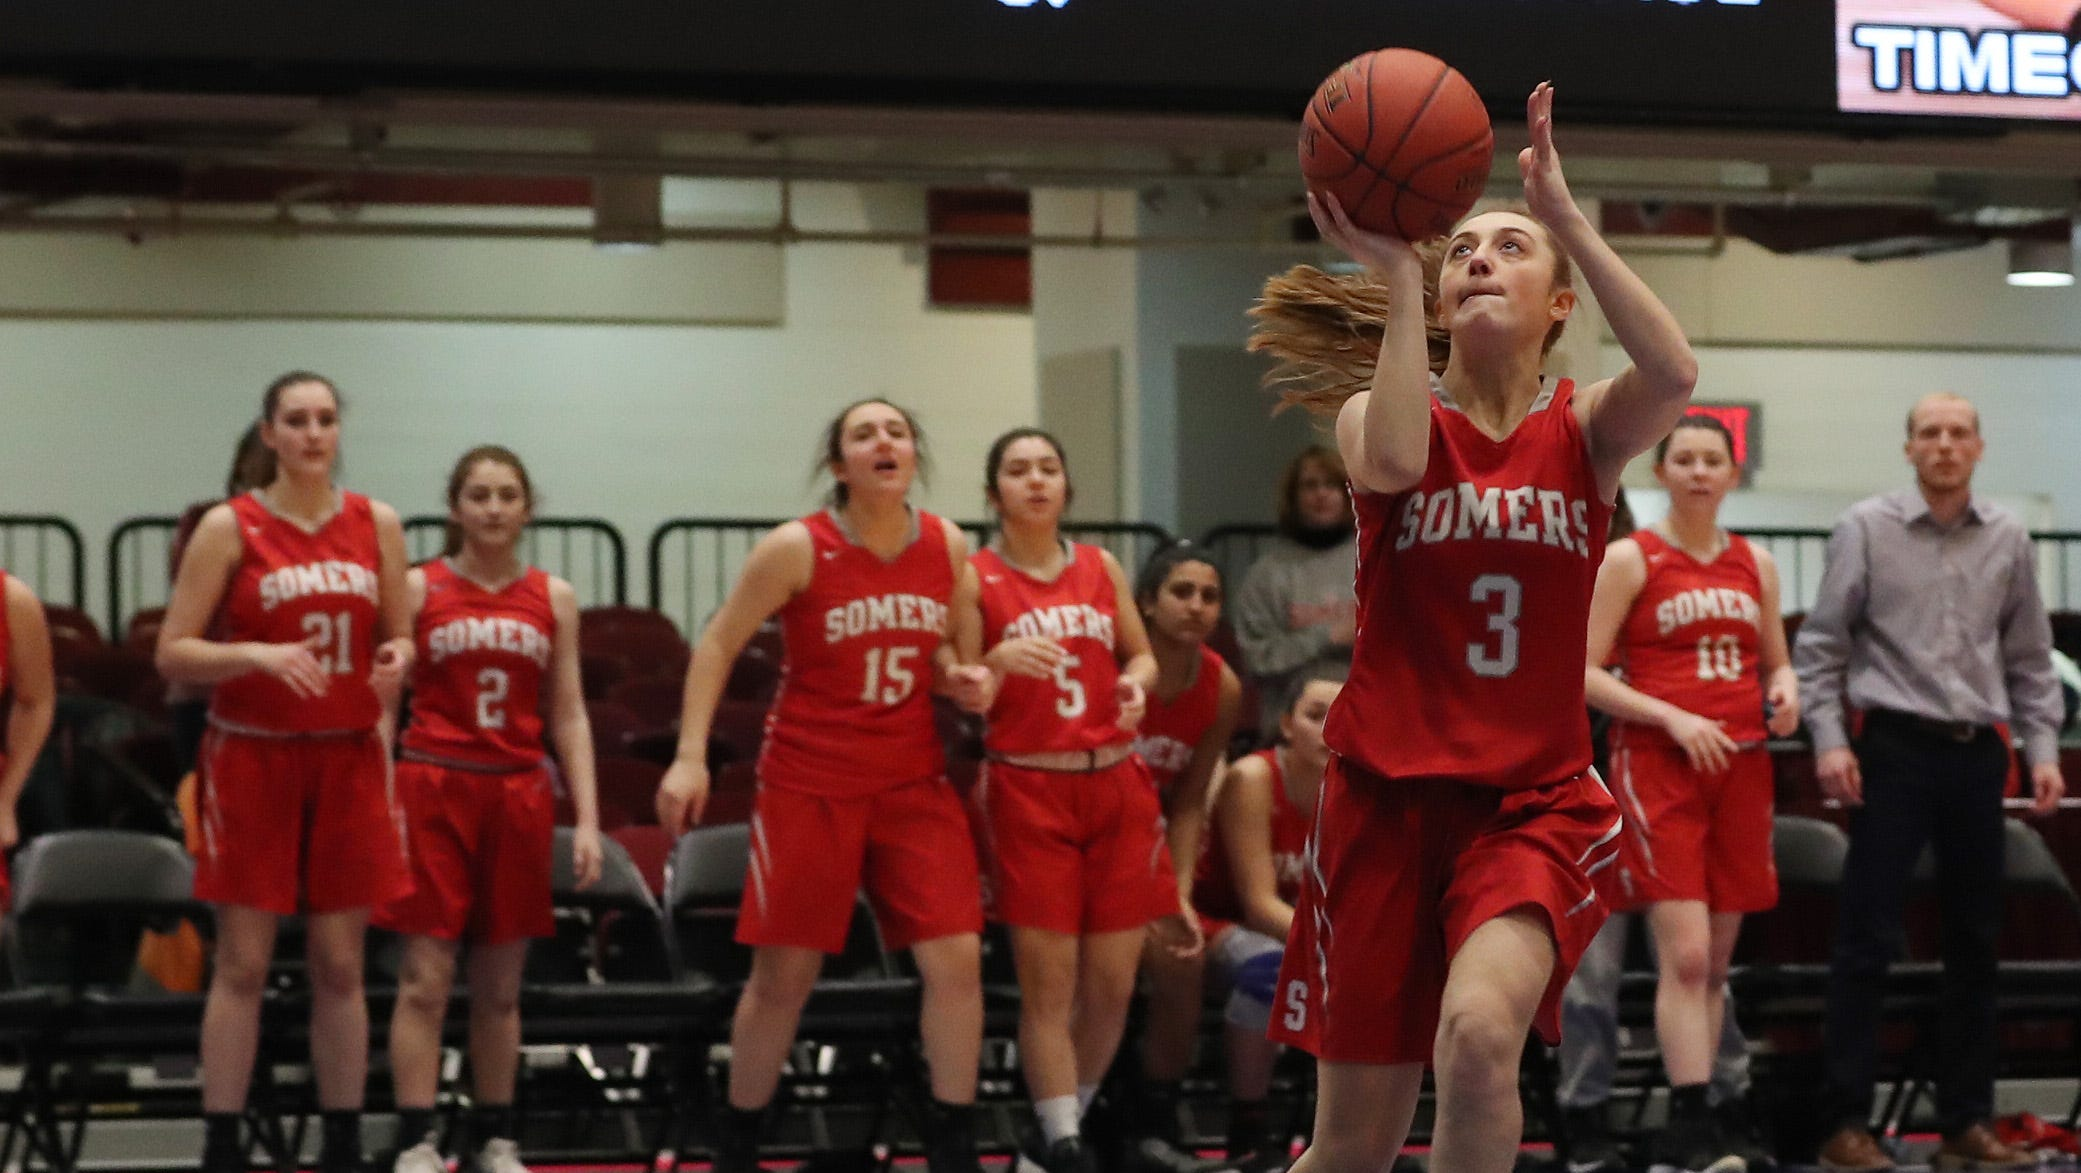 Somers defeated Walter Panas 39-27 in the girls Class A basketball playoff semifinal at the Westchester County Center in White Plains  Feb. 26,  2019.